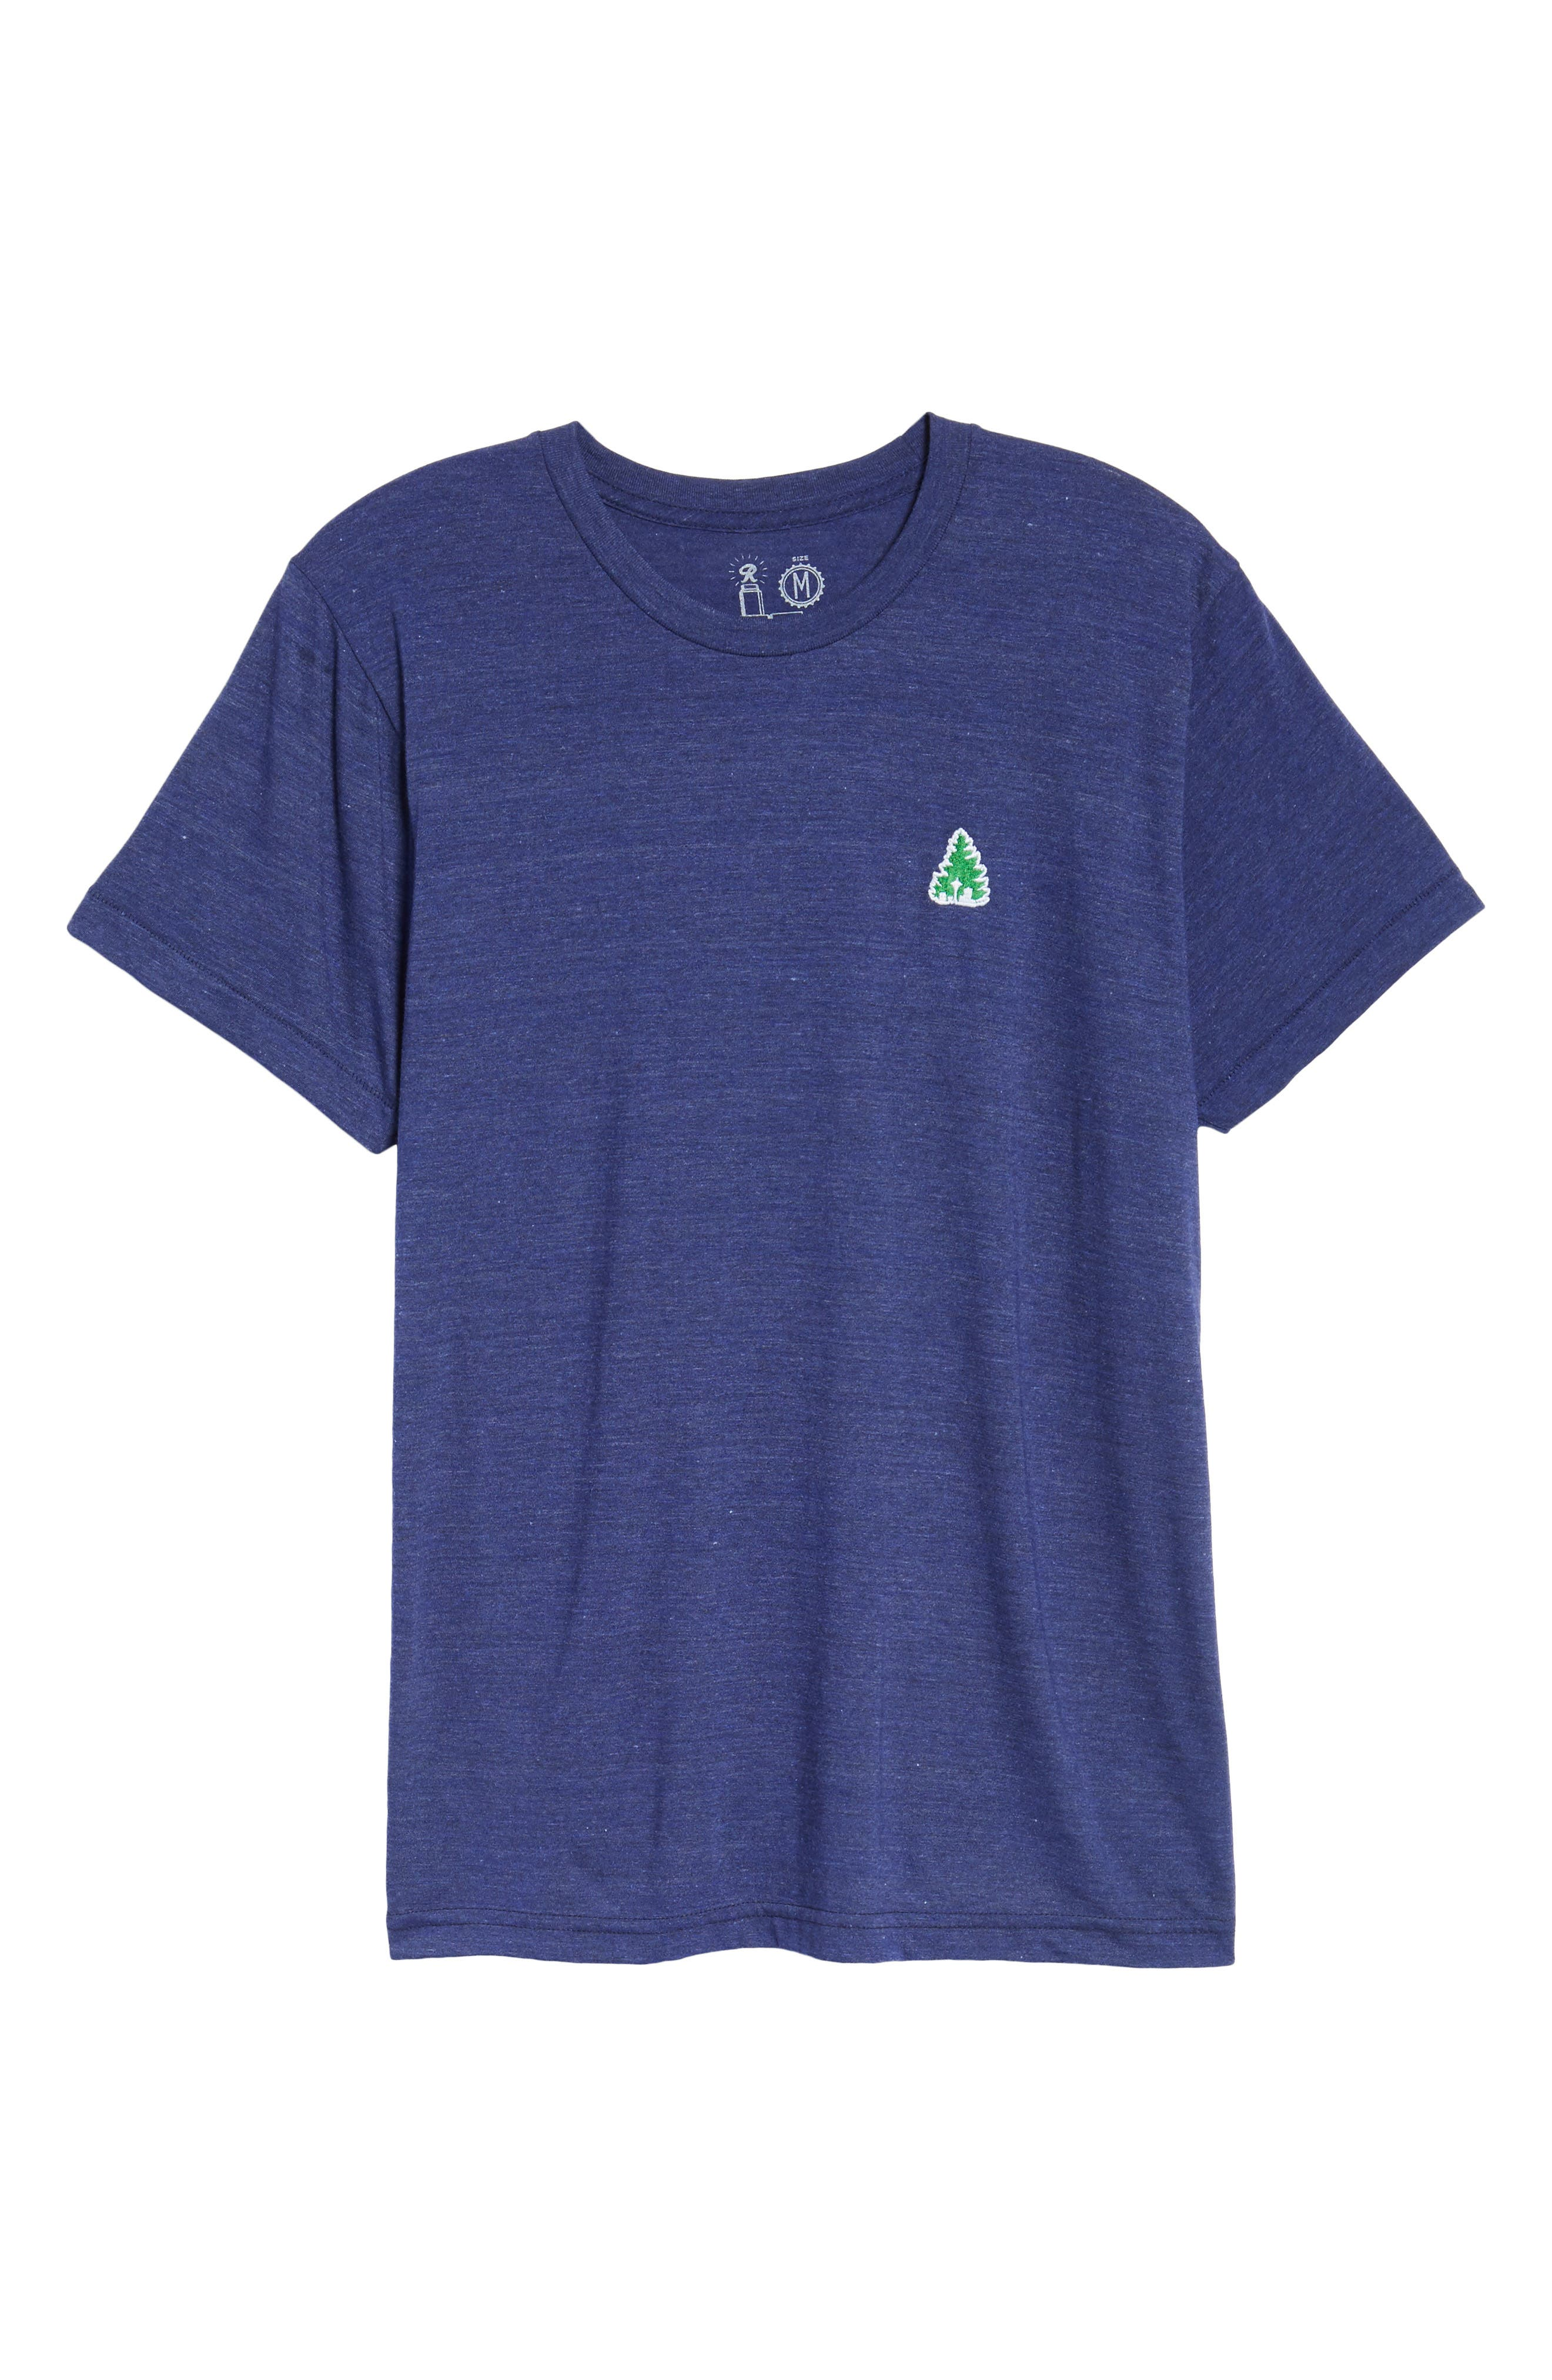 Johnny Tree Embroidered T-Shirt,                             Alternate thumbnail 6, color,                             Blue